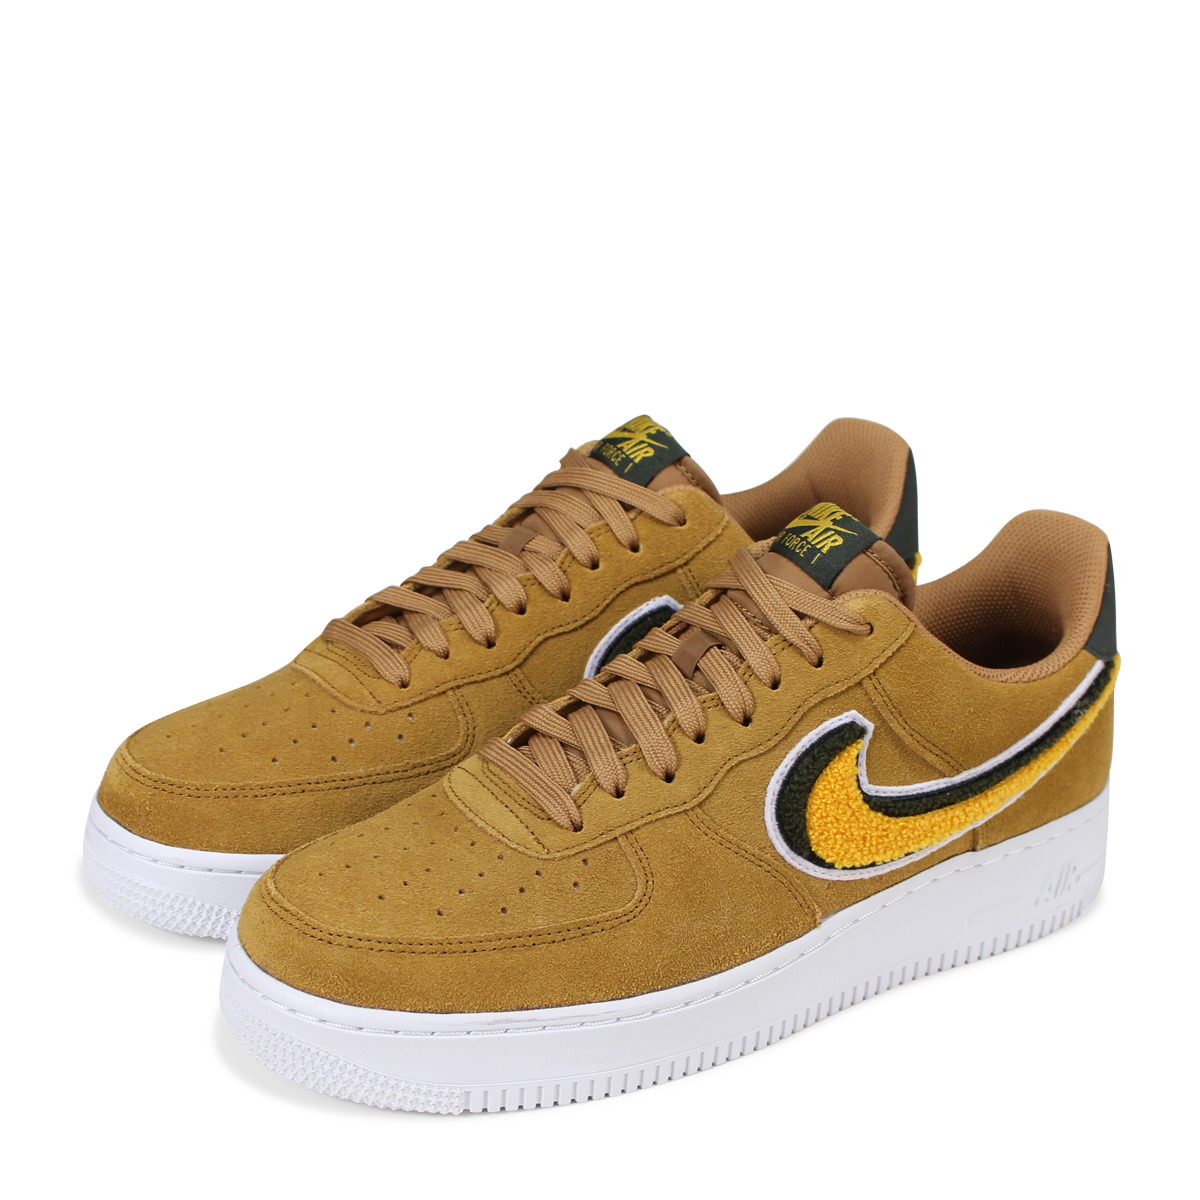 NIKE AIR FORCE 1 07 LV8 Nike air force 1 sneakers men 823,511 204 brown [load planned Shinnyu load in reservation product 628 containing] [186]